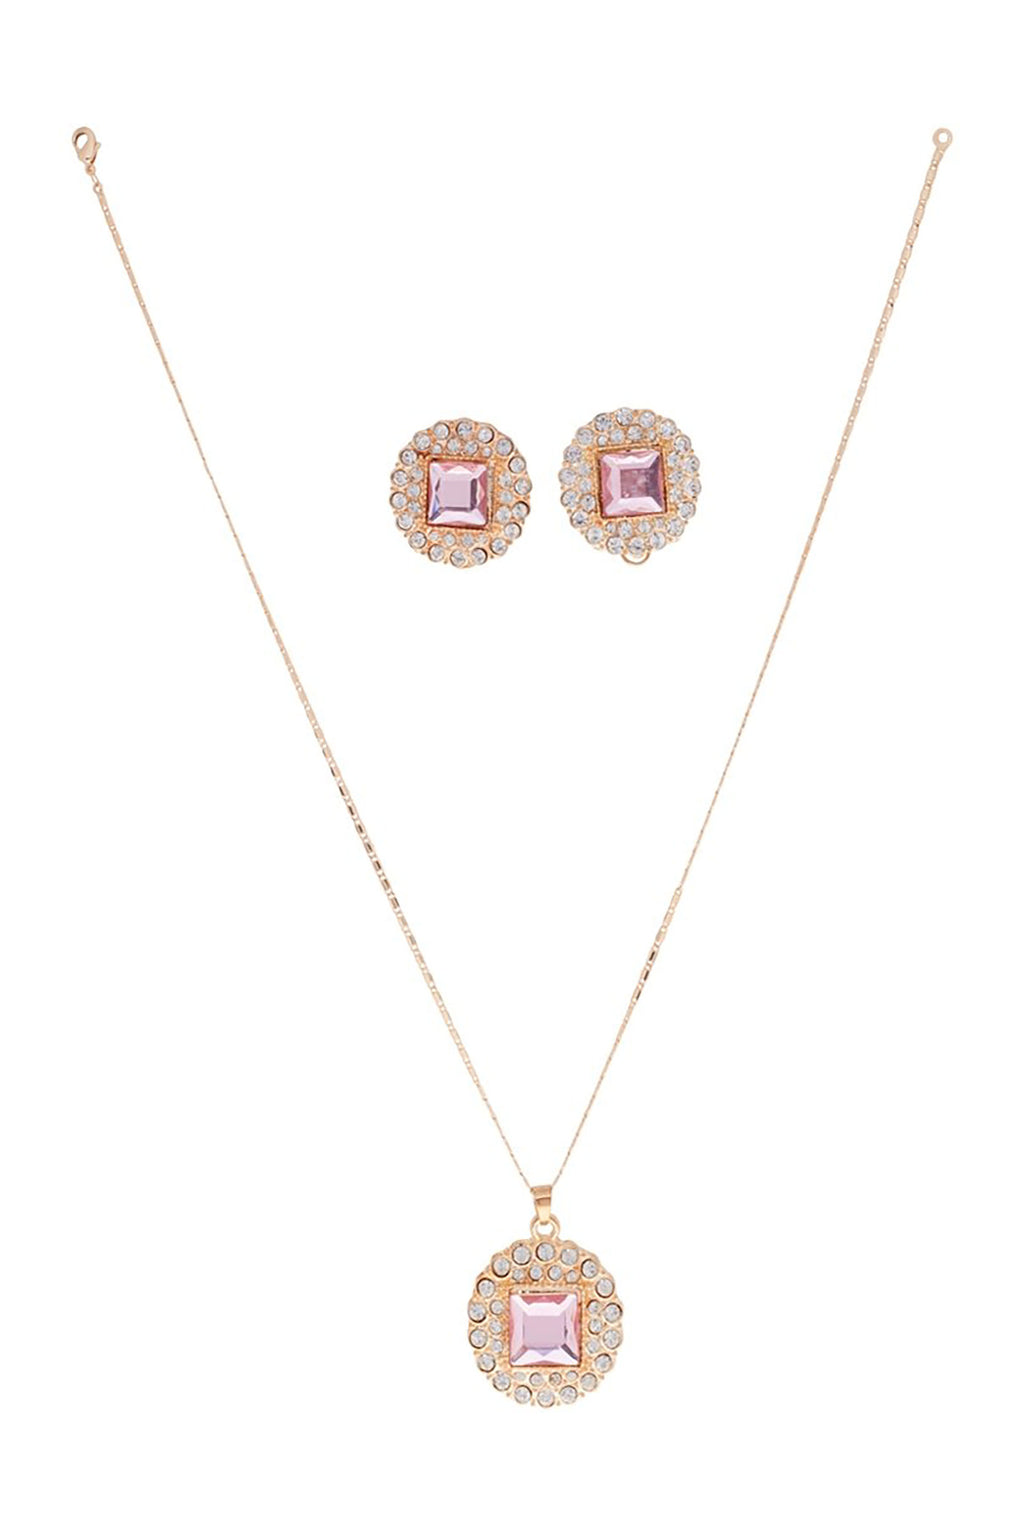 Perth Necklace and Earring Set